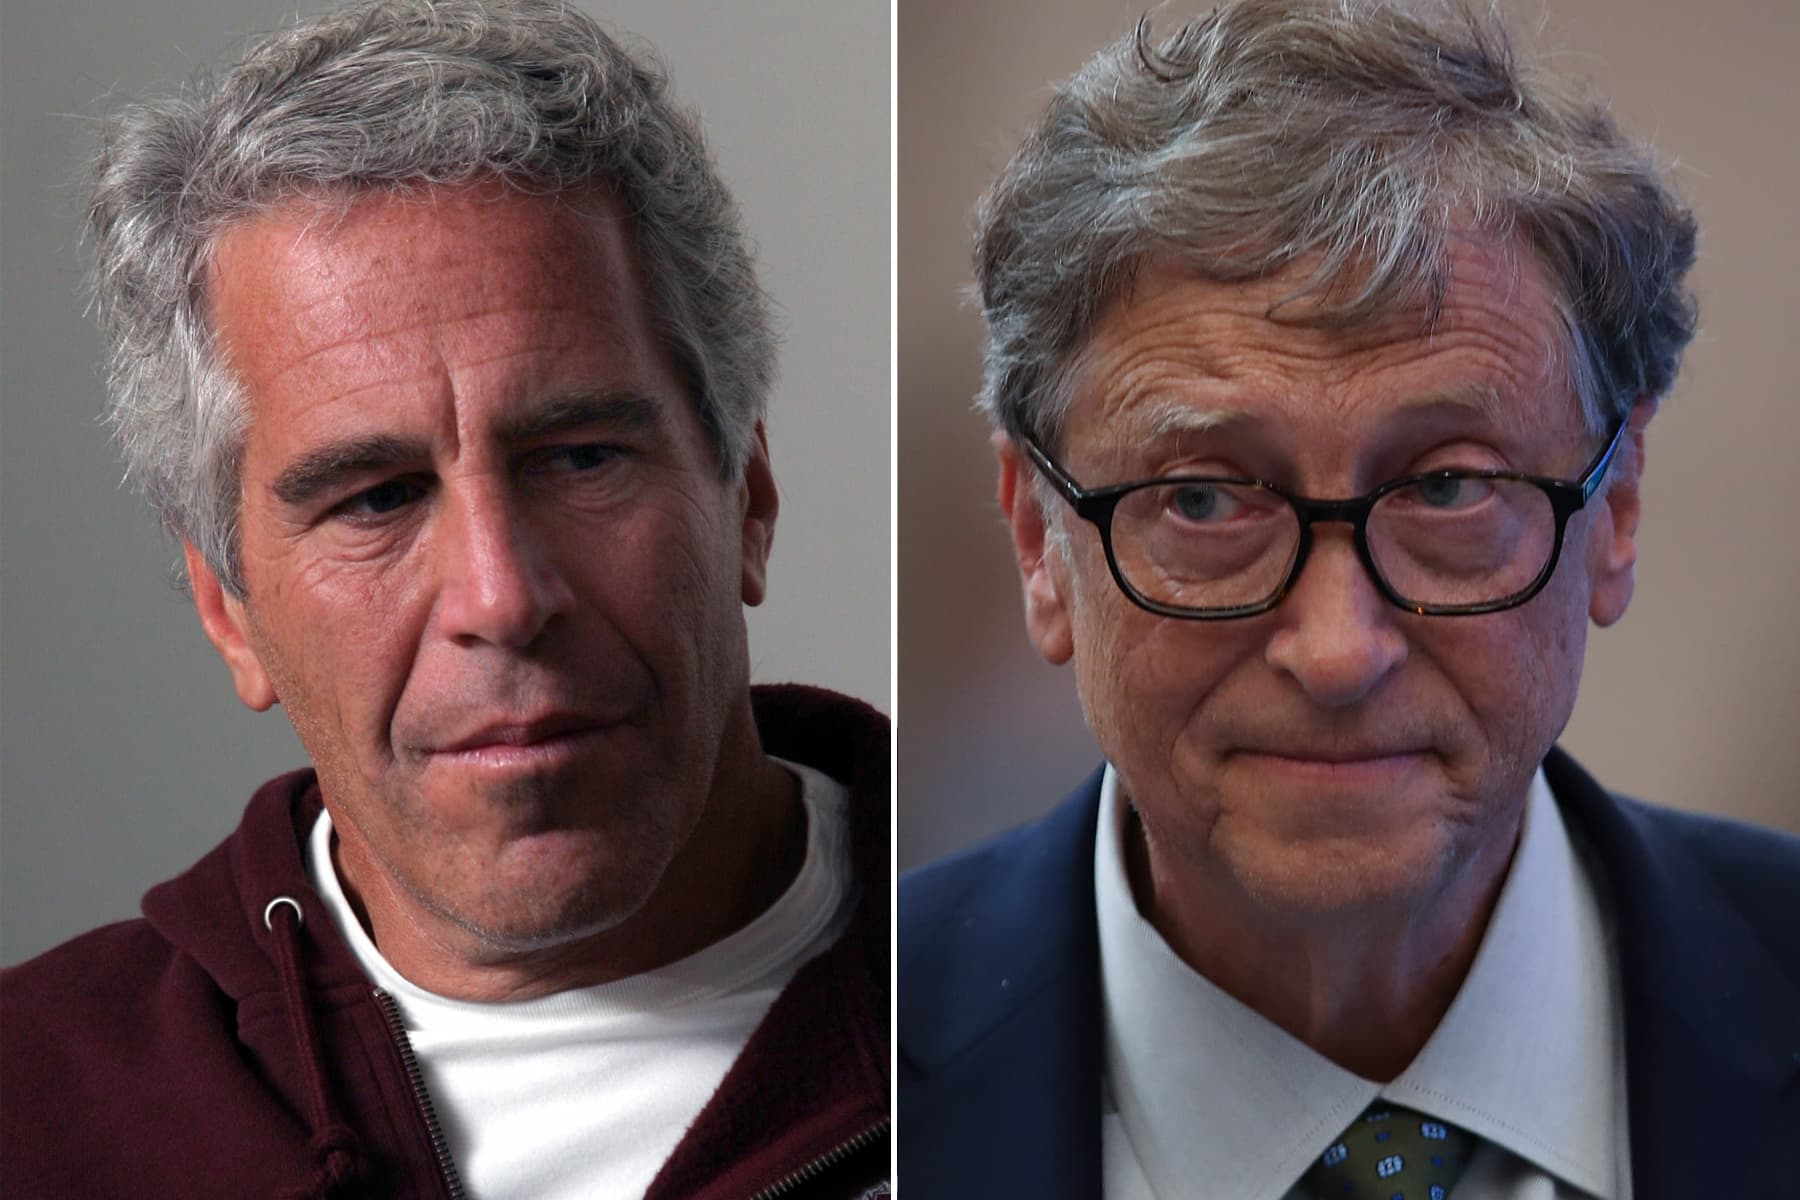 Bill Gates: I met with Jeffrey Epstein because 'he knows a lot of rich people'